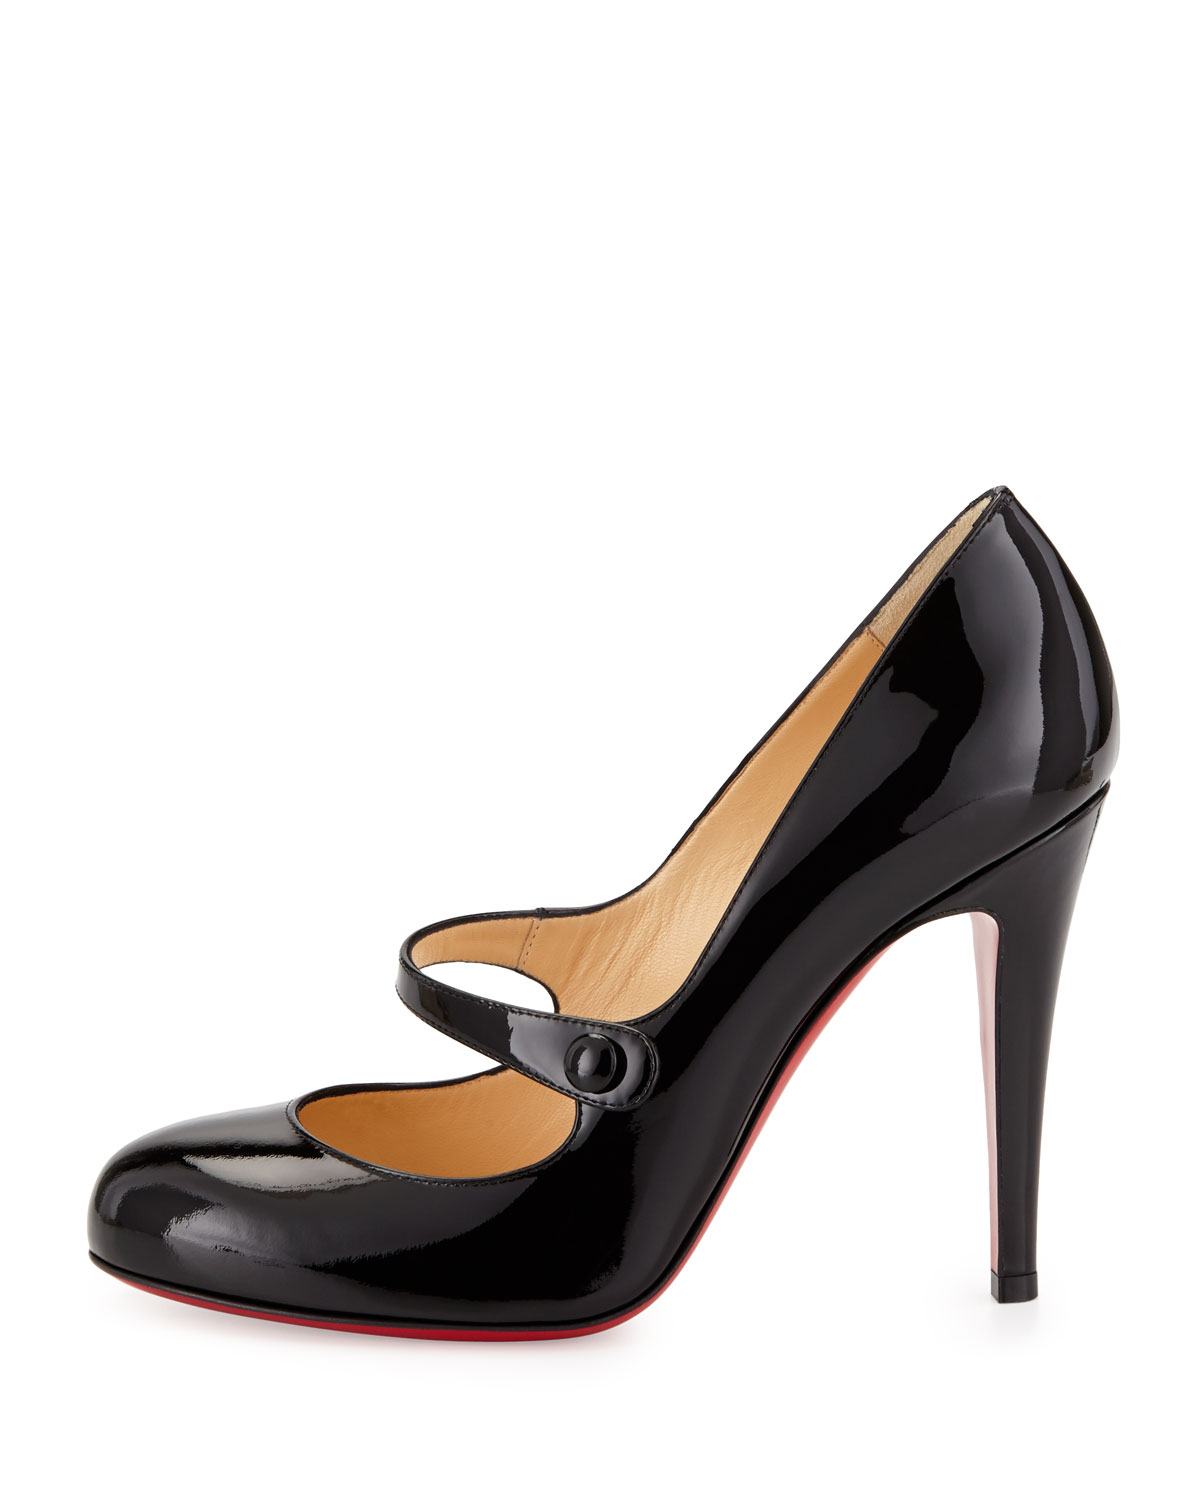 christian louboutin charlene mary jane red sole pump